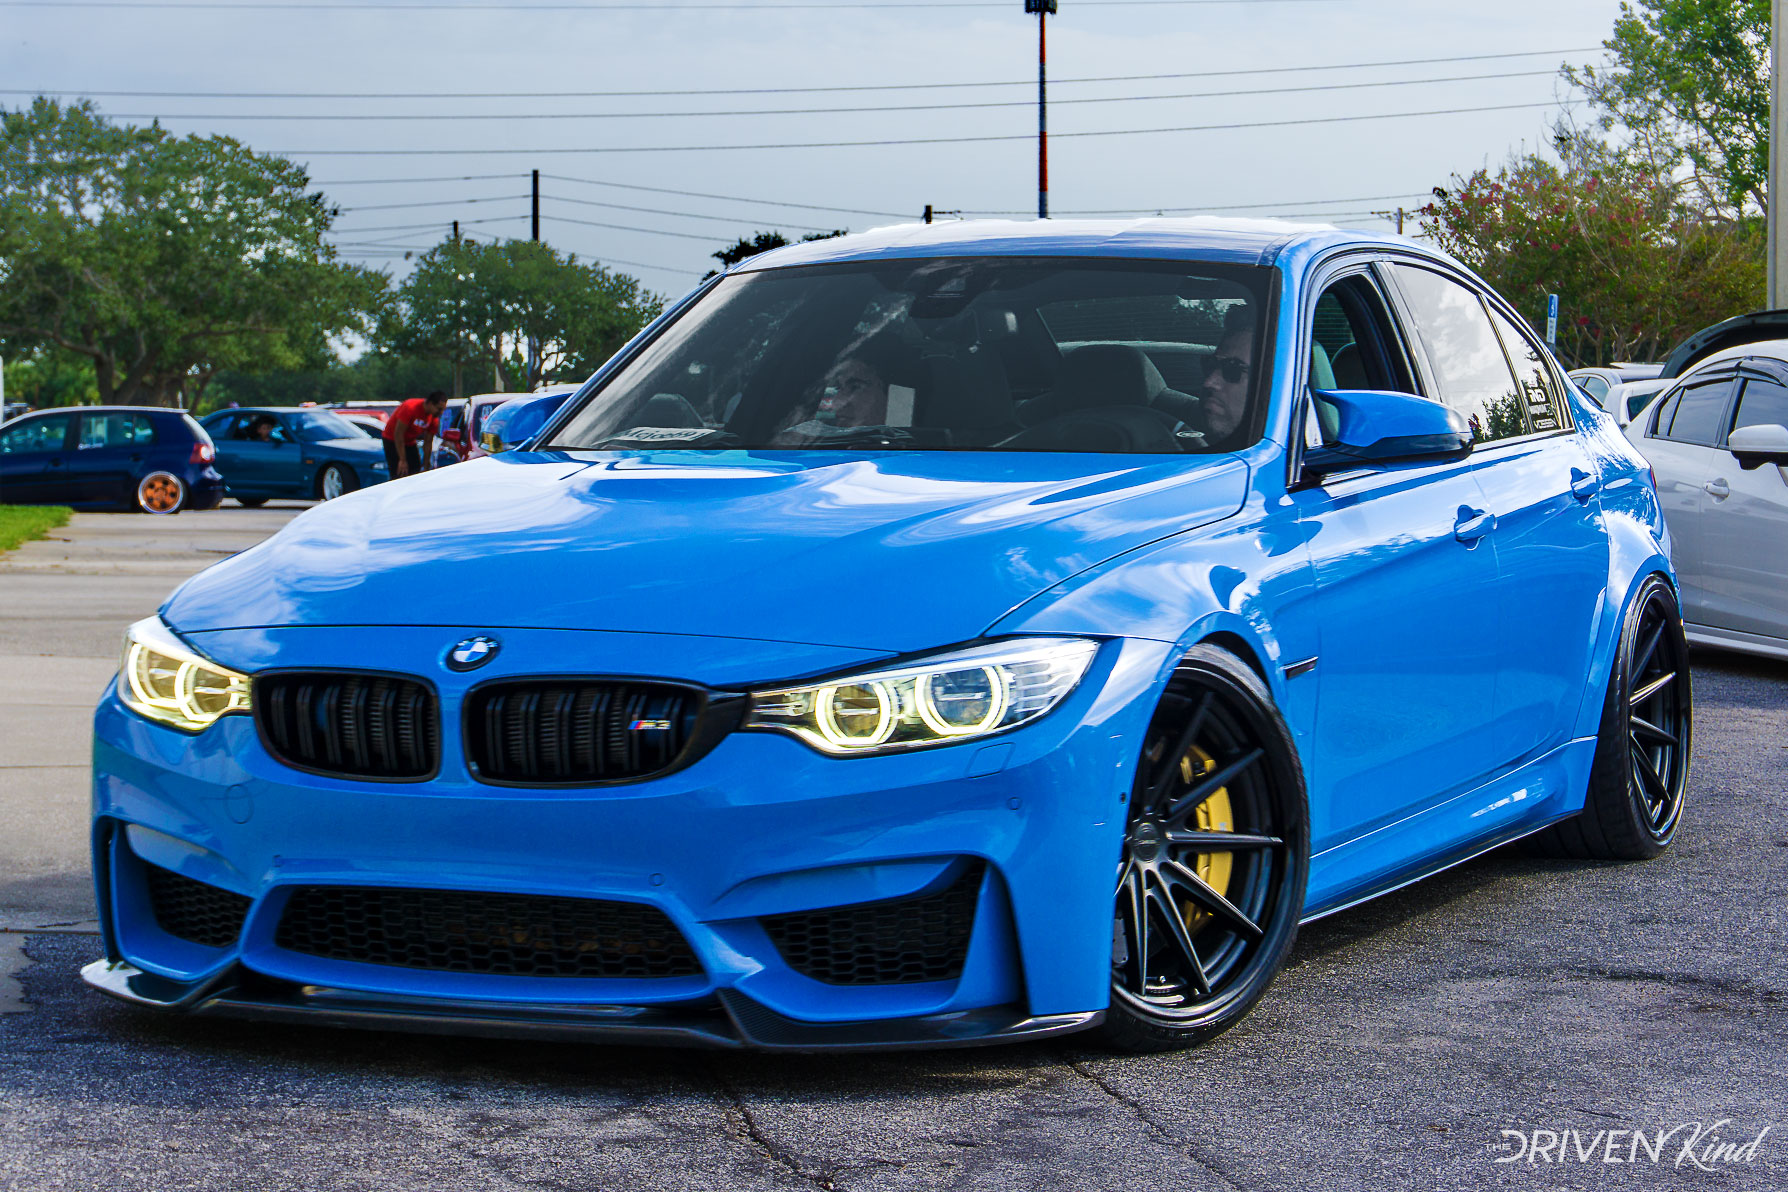 BMW M5 Daily Driven Inc. Presents Florida's Finest Melbourne FL Auditorium coverage by The Driven Kind